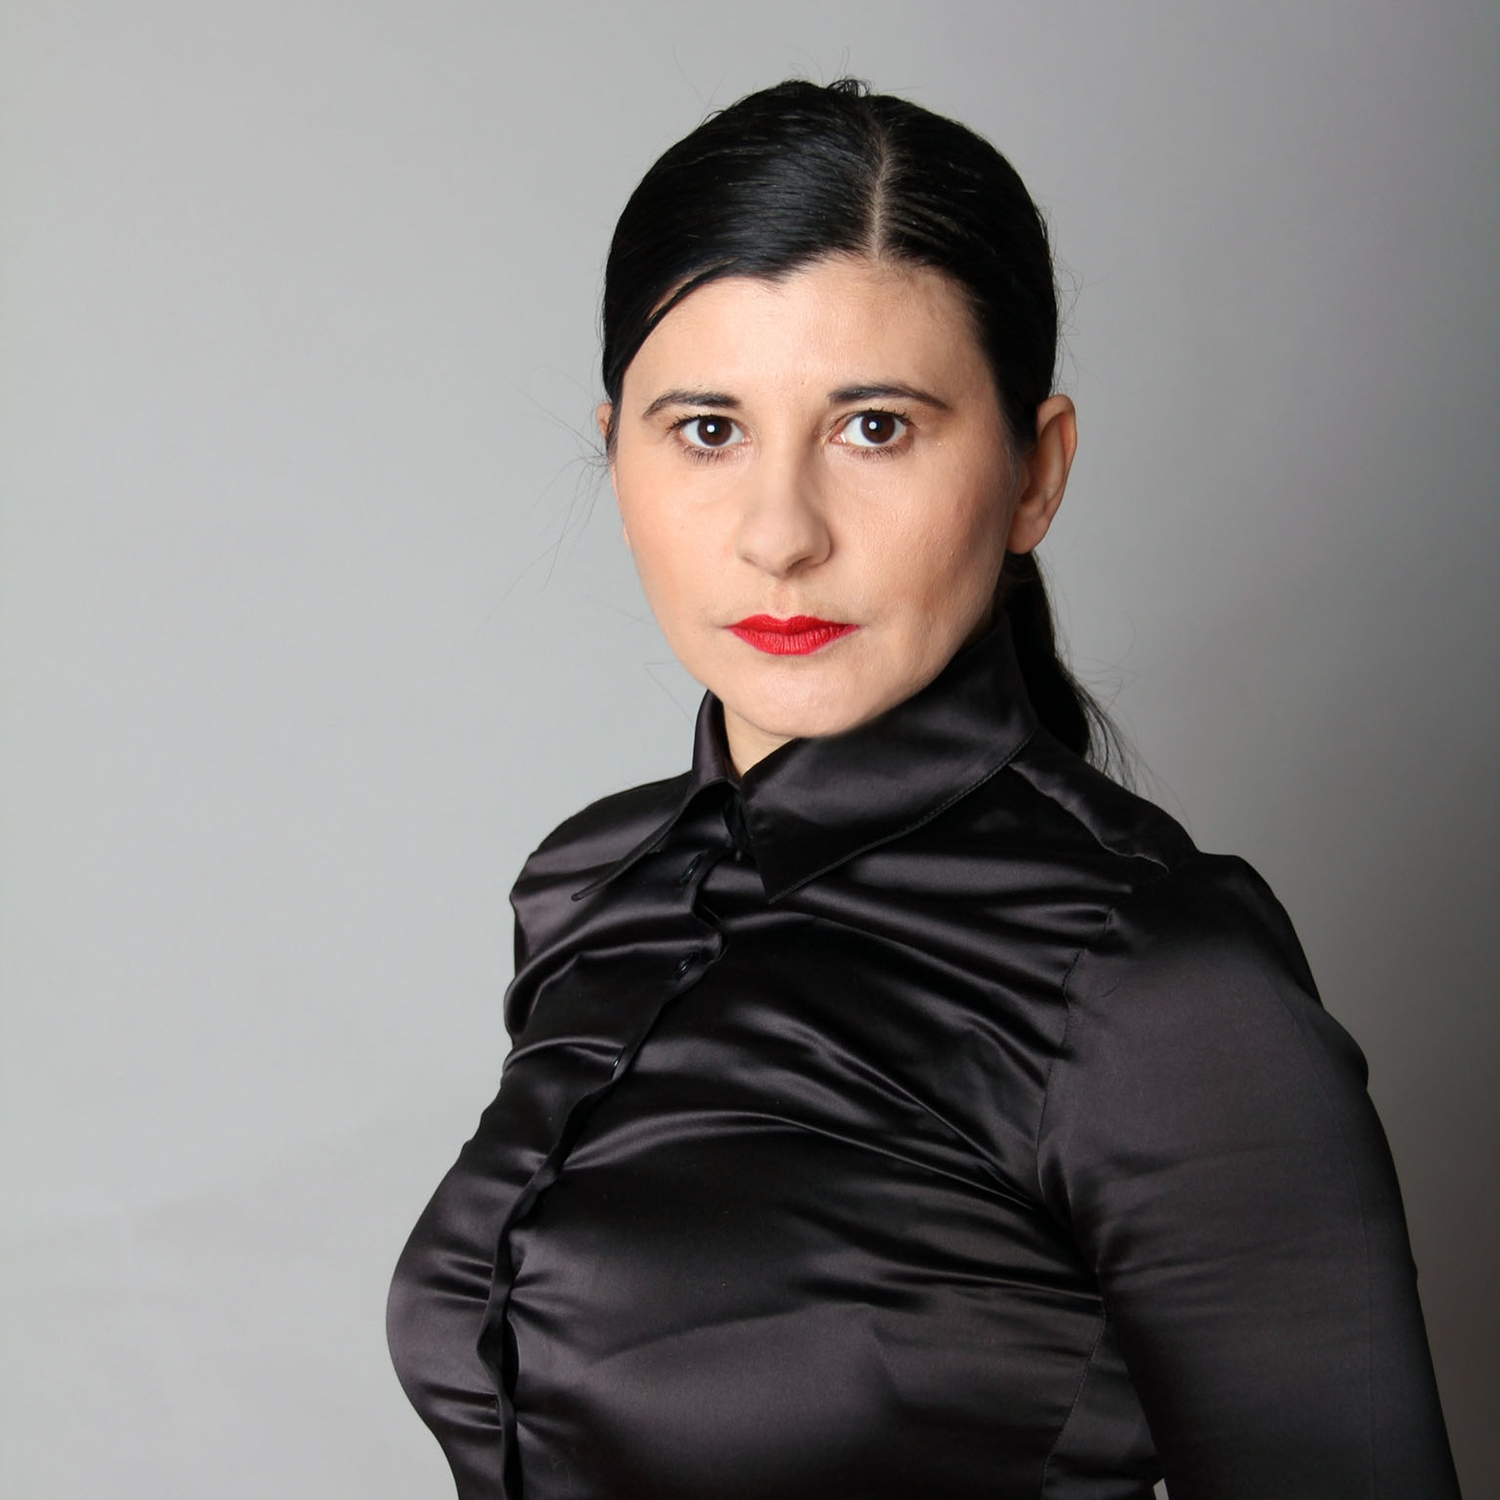 Nezaket Ekici portrait photo by Nihad Nino Pušija.jpg